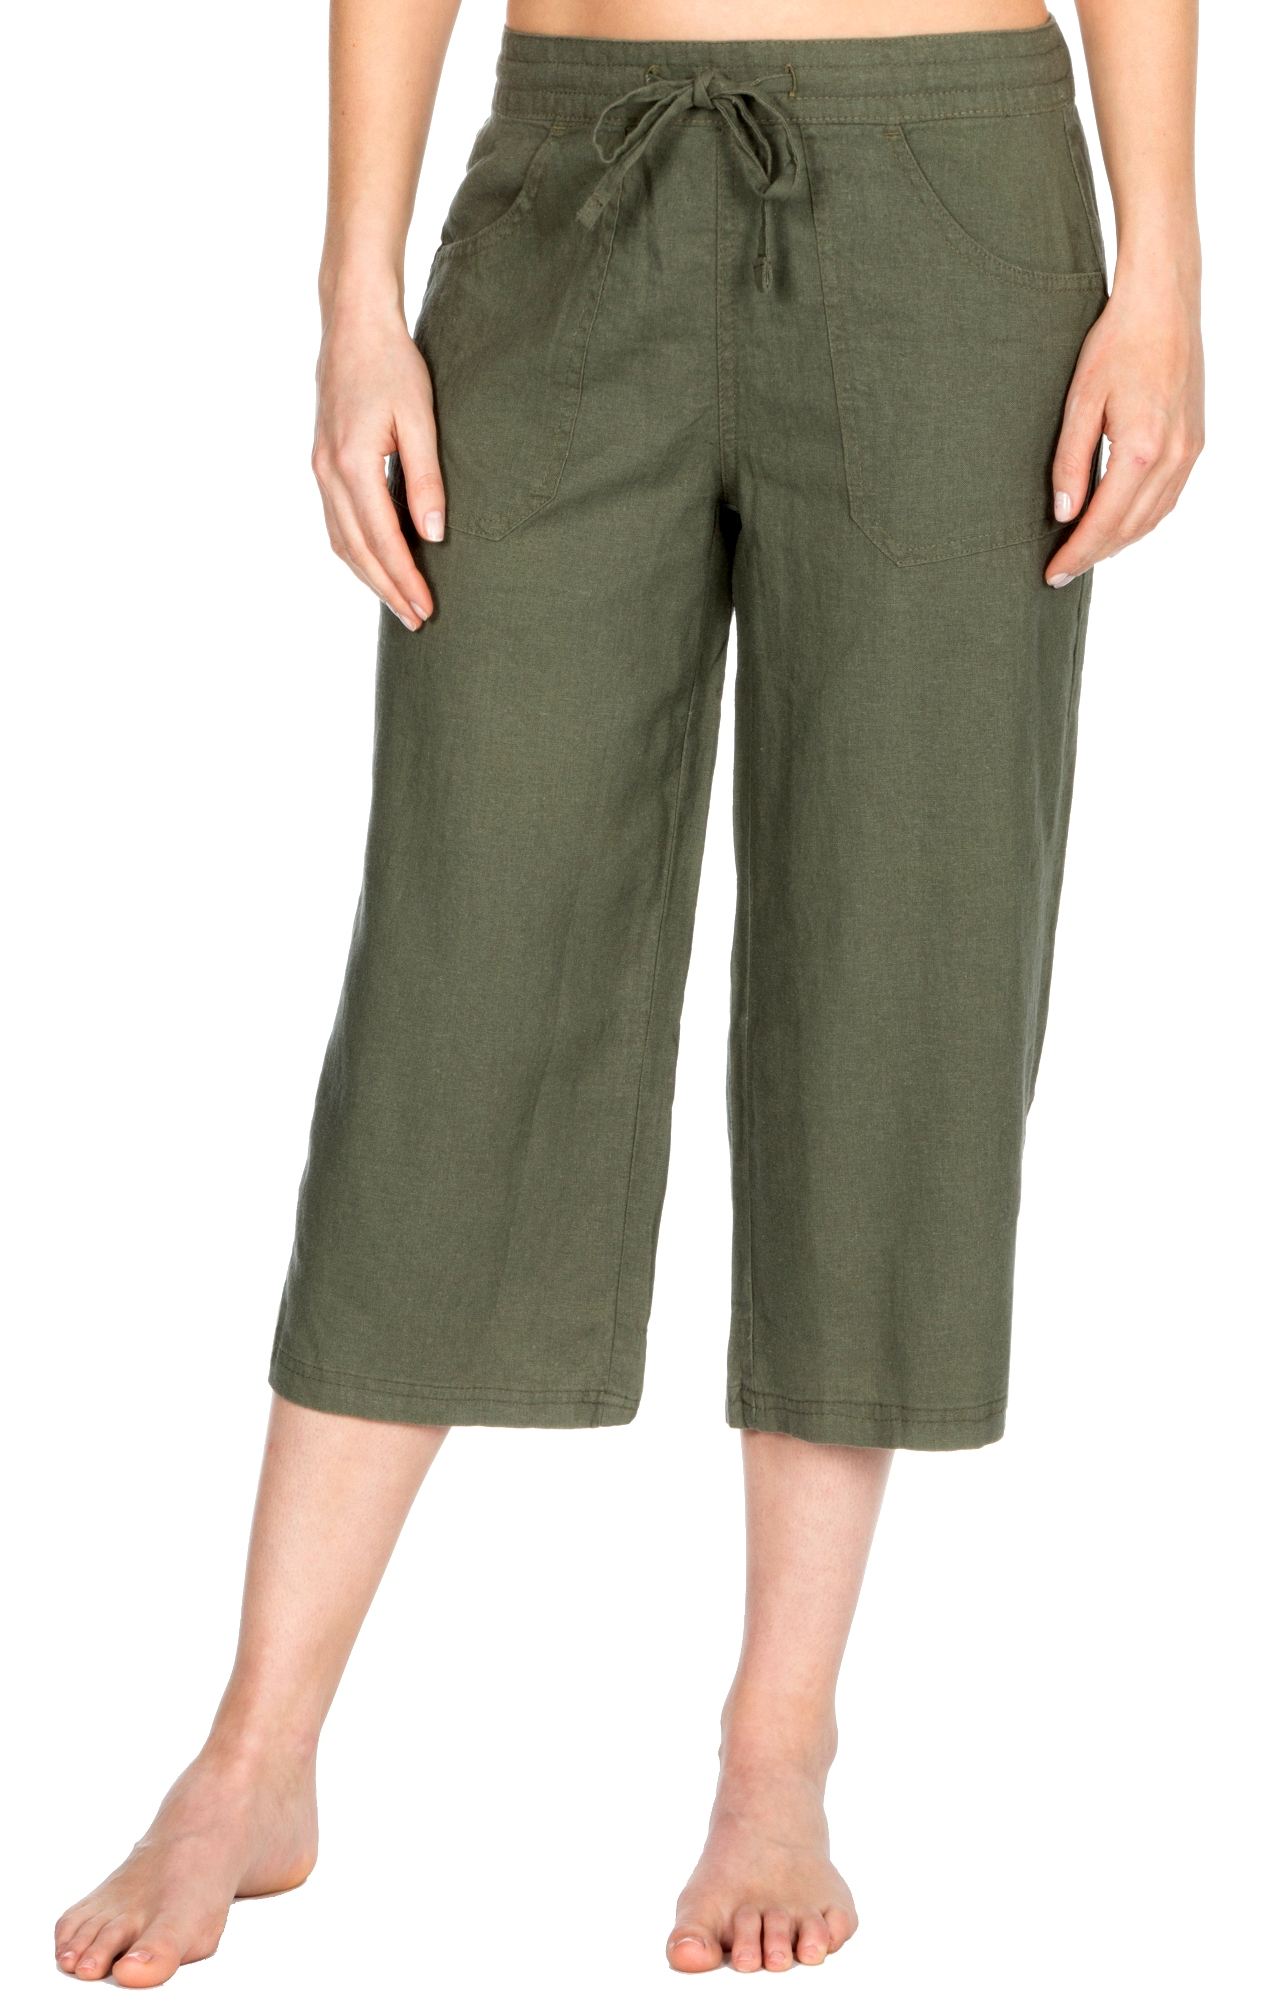 Womens Linen Trousers Cropped Capri or Full Length Pants Casual Fit Size UK 8-18